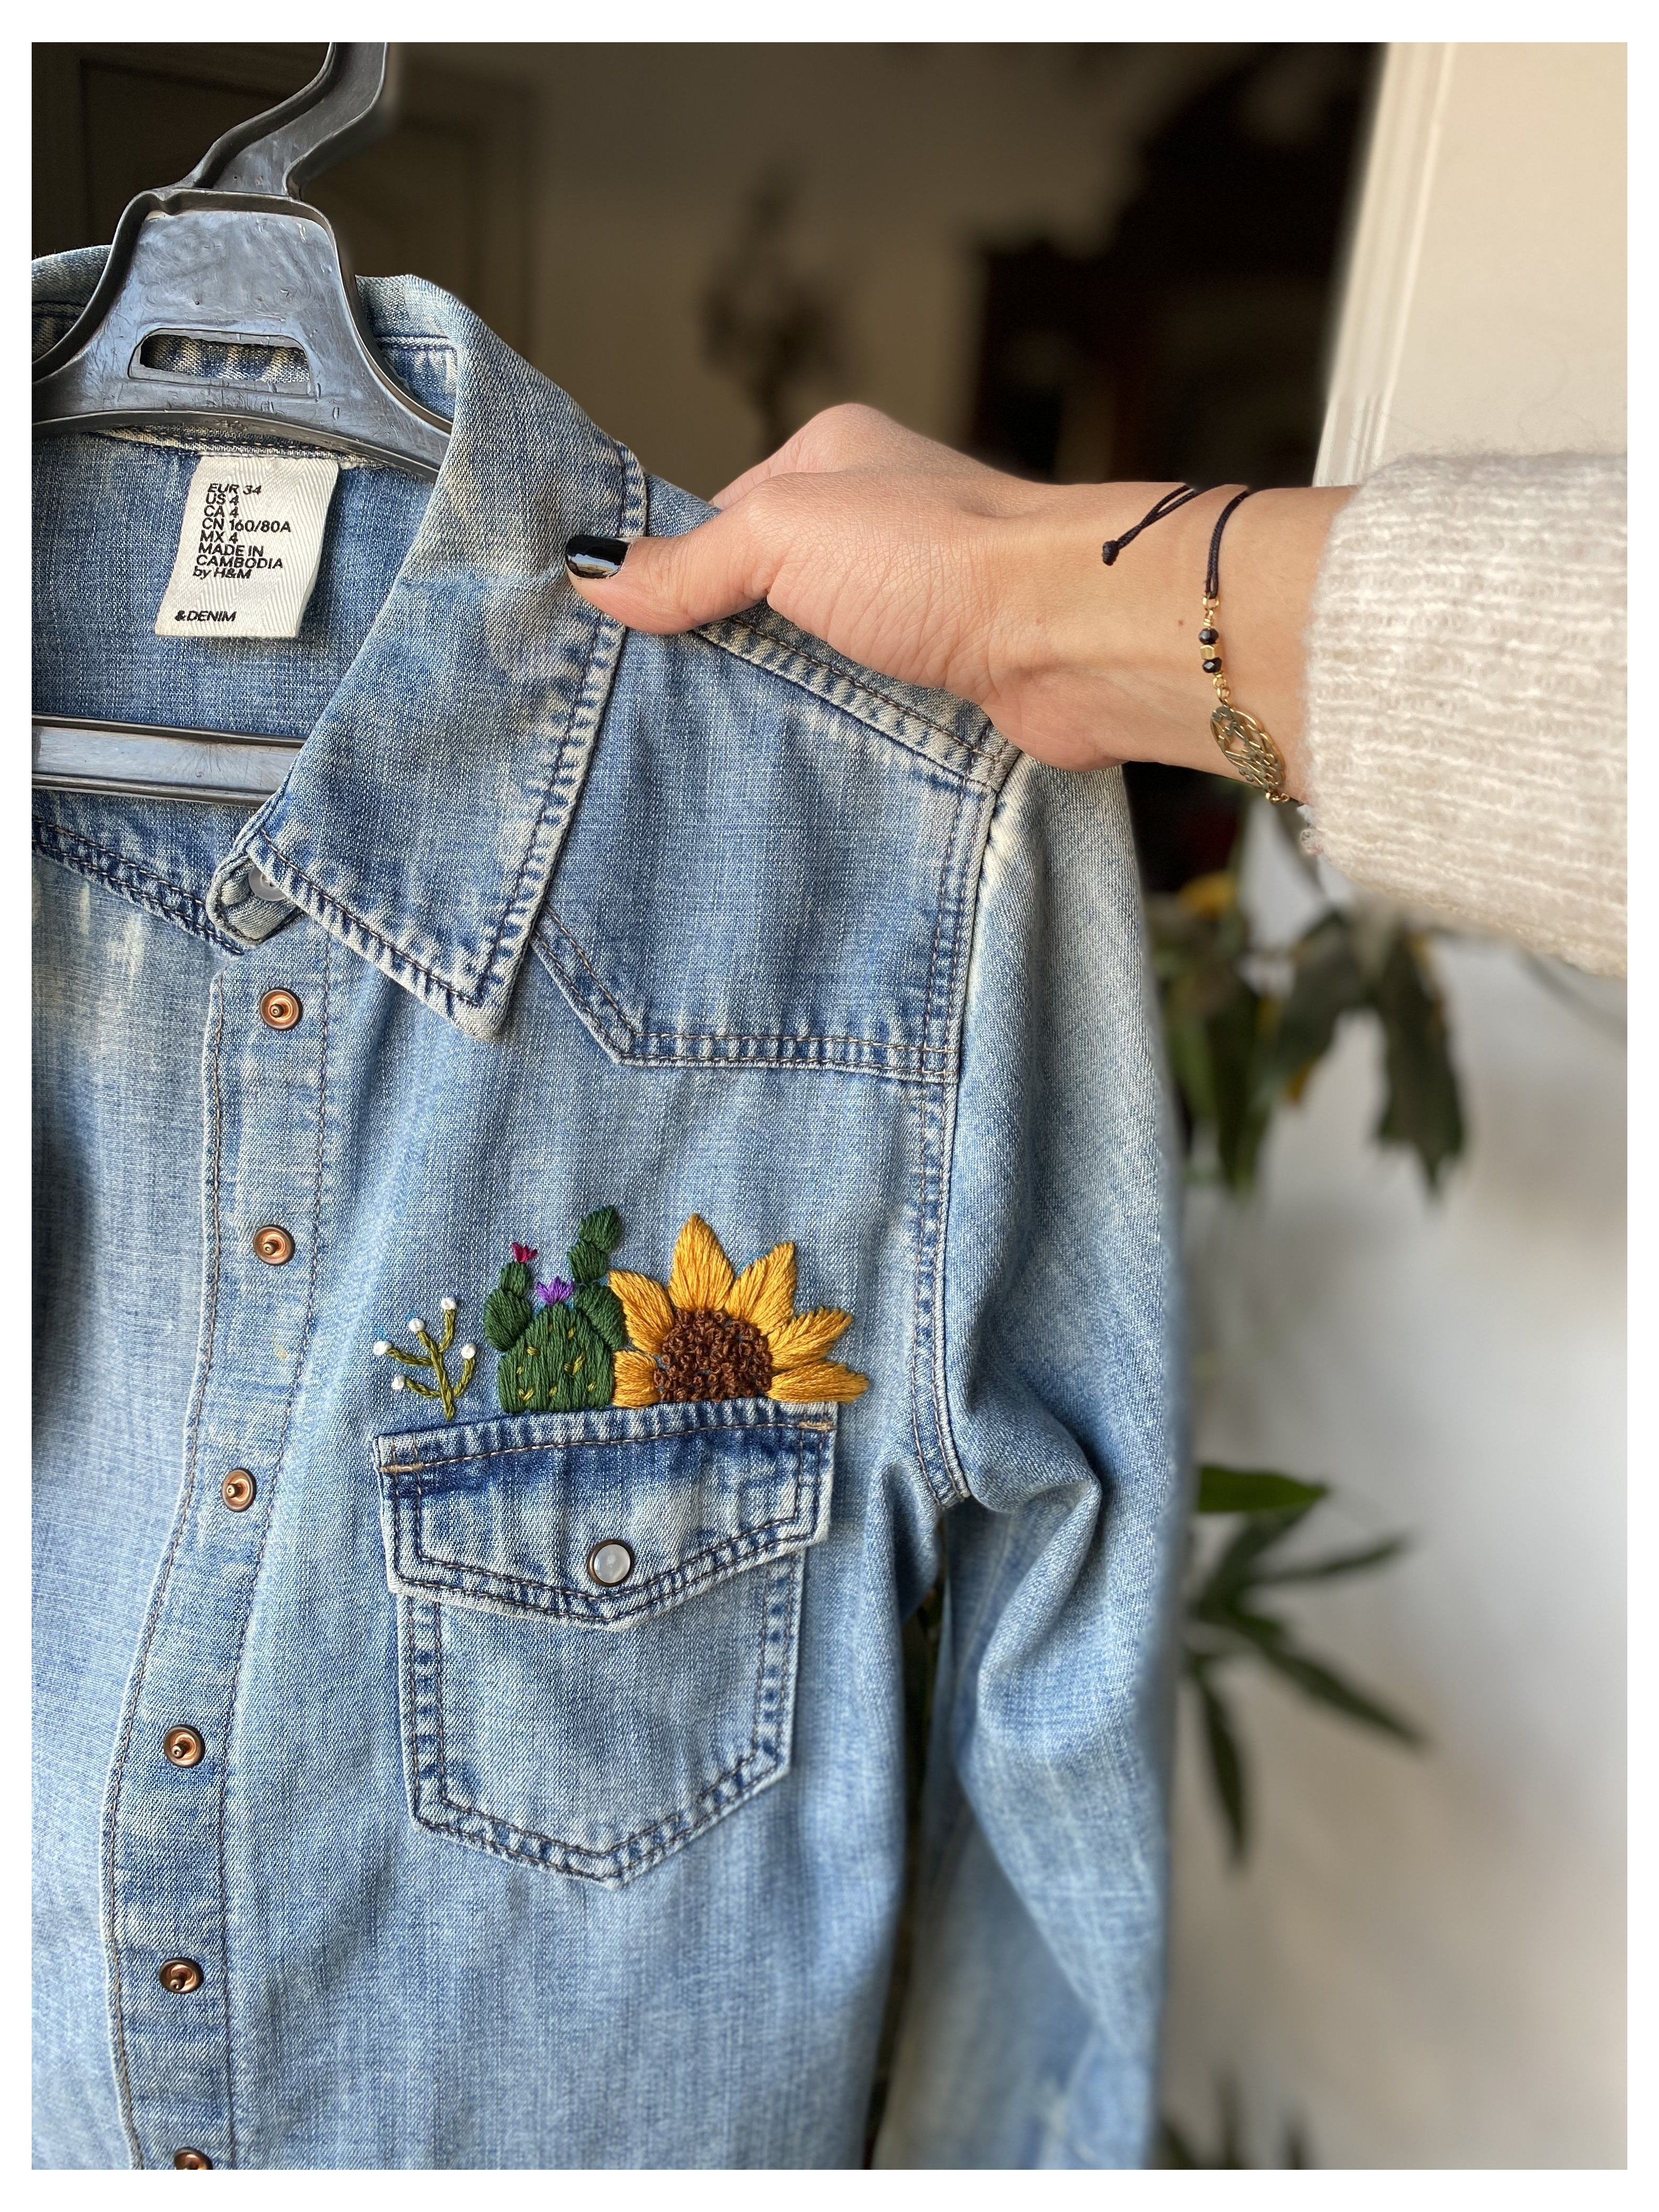 Hand Embroidery Denim Jacket Embroidery Ideas Denimjacketembroideryideas Clothes Embroidery Diy Embroidered Denim Jacket Embroidered Denim Shirt [ 4192 x 3144 Pixel ]